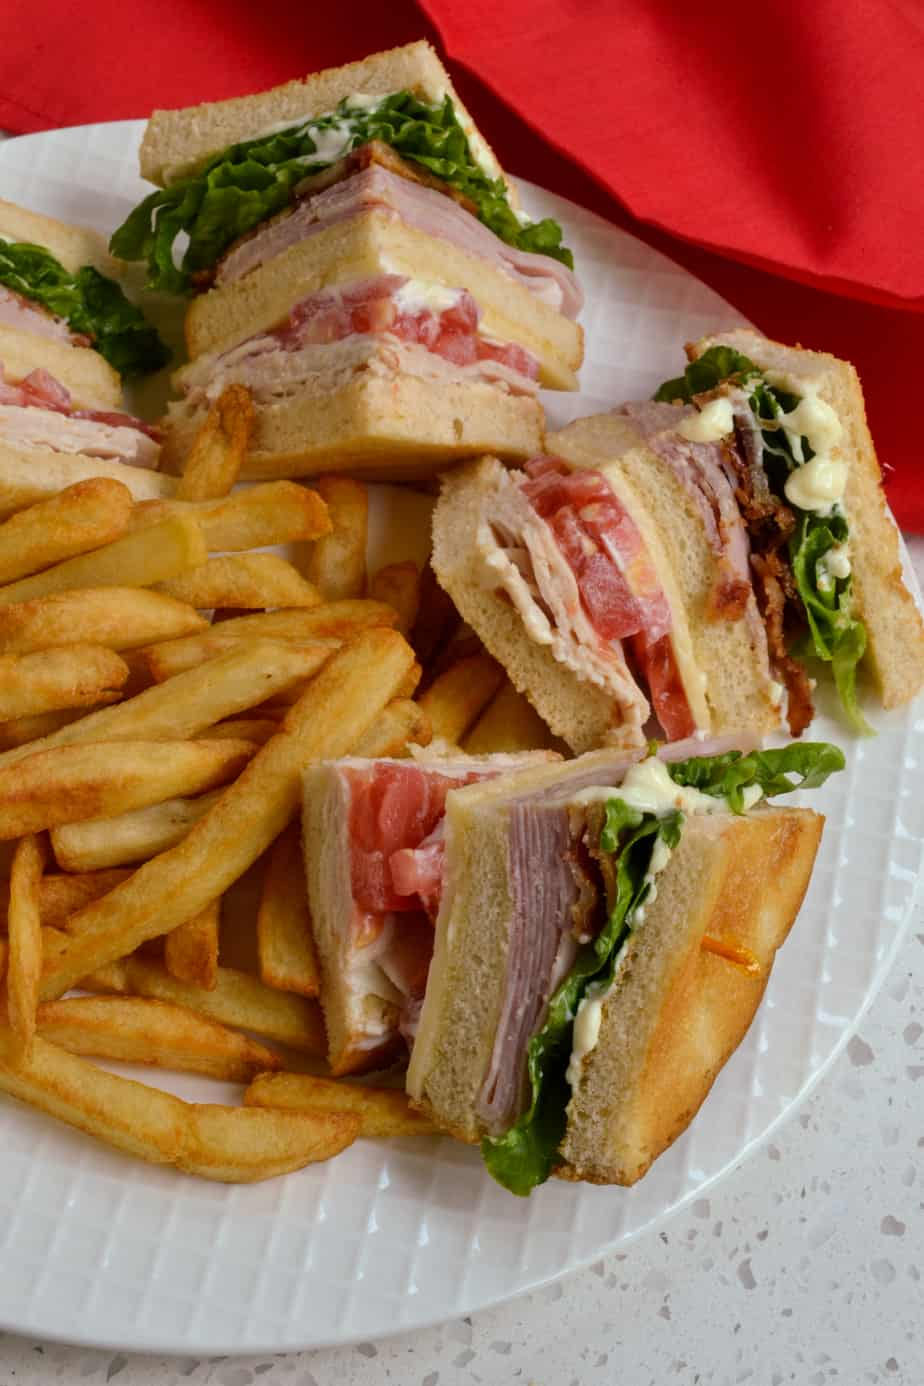 Quartered Club Sandwich served with French fries.